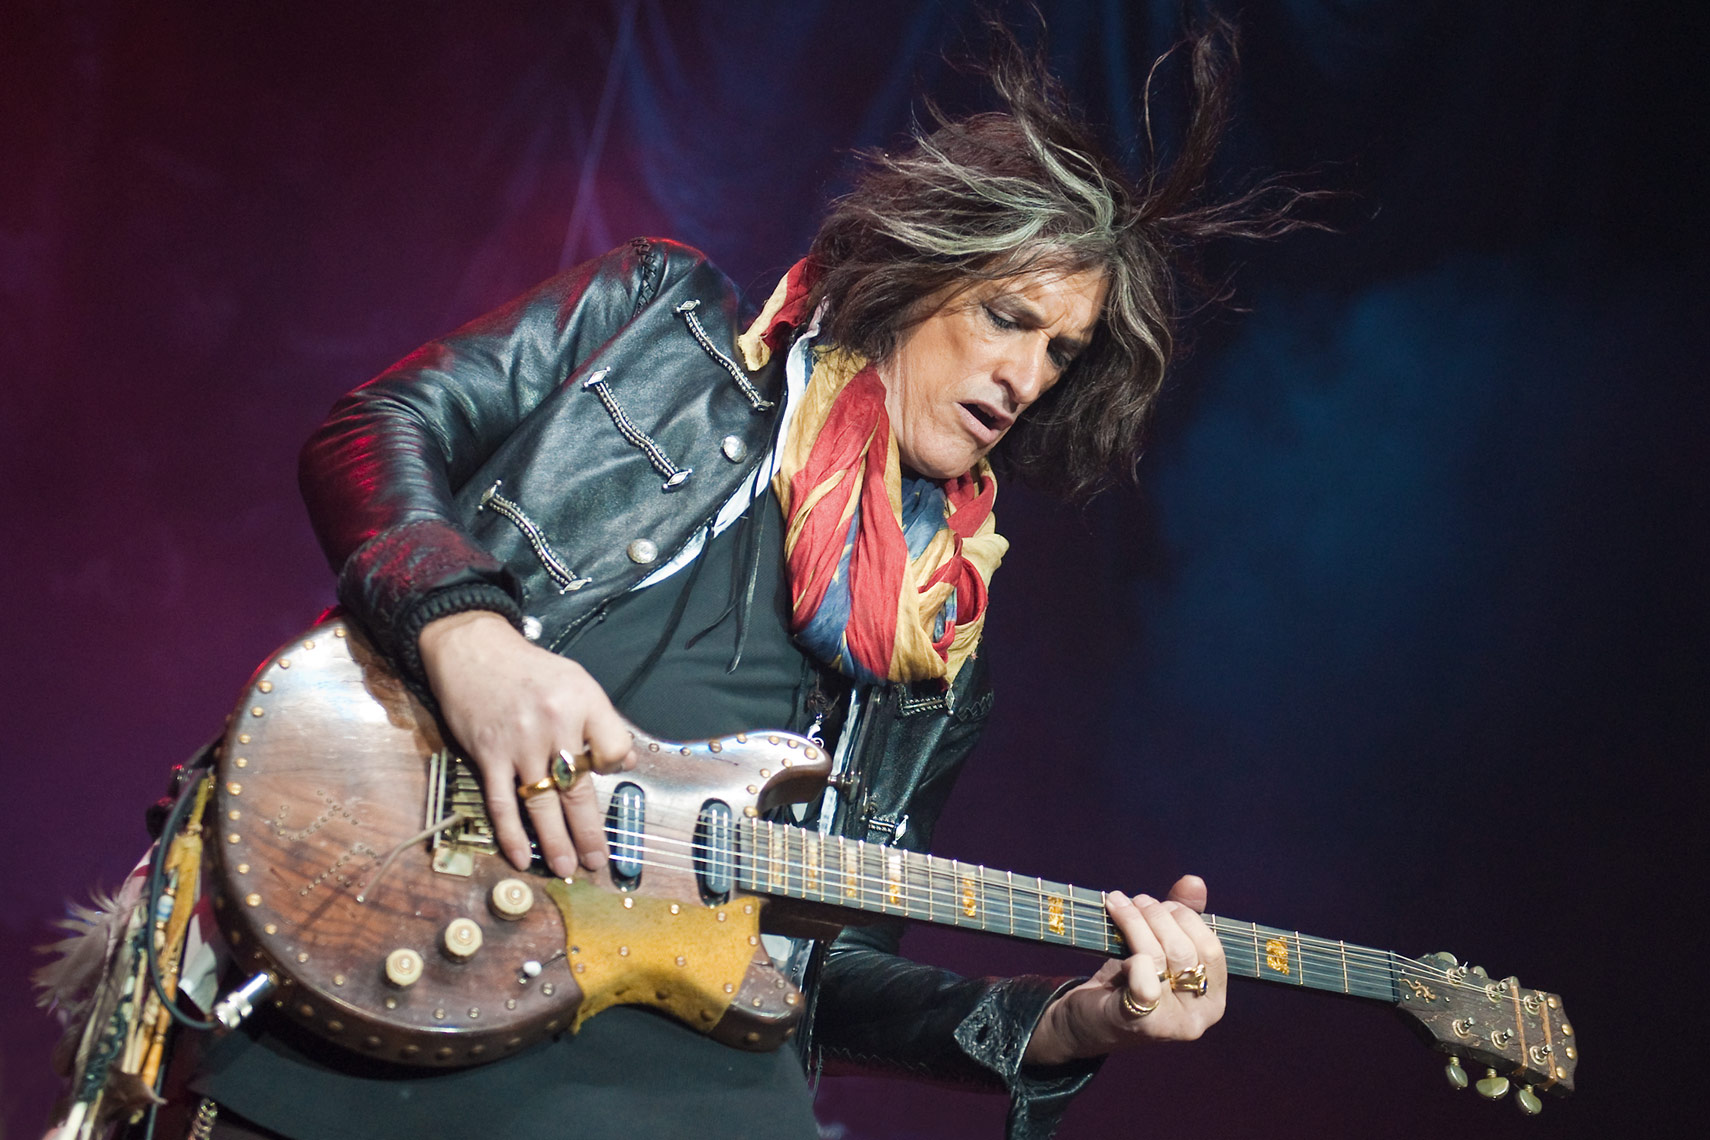 Joe-Perry-Wembley-Arena.jpg